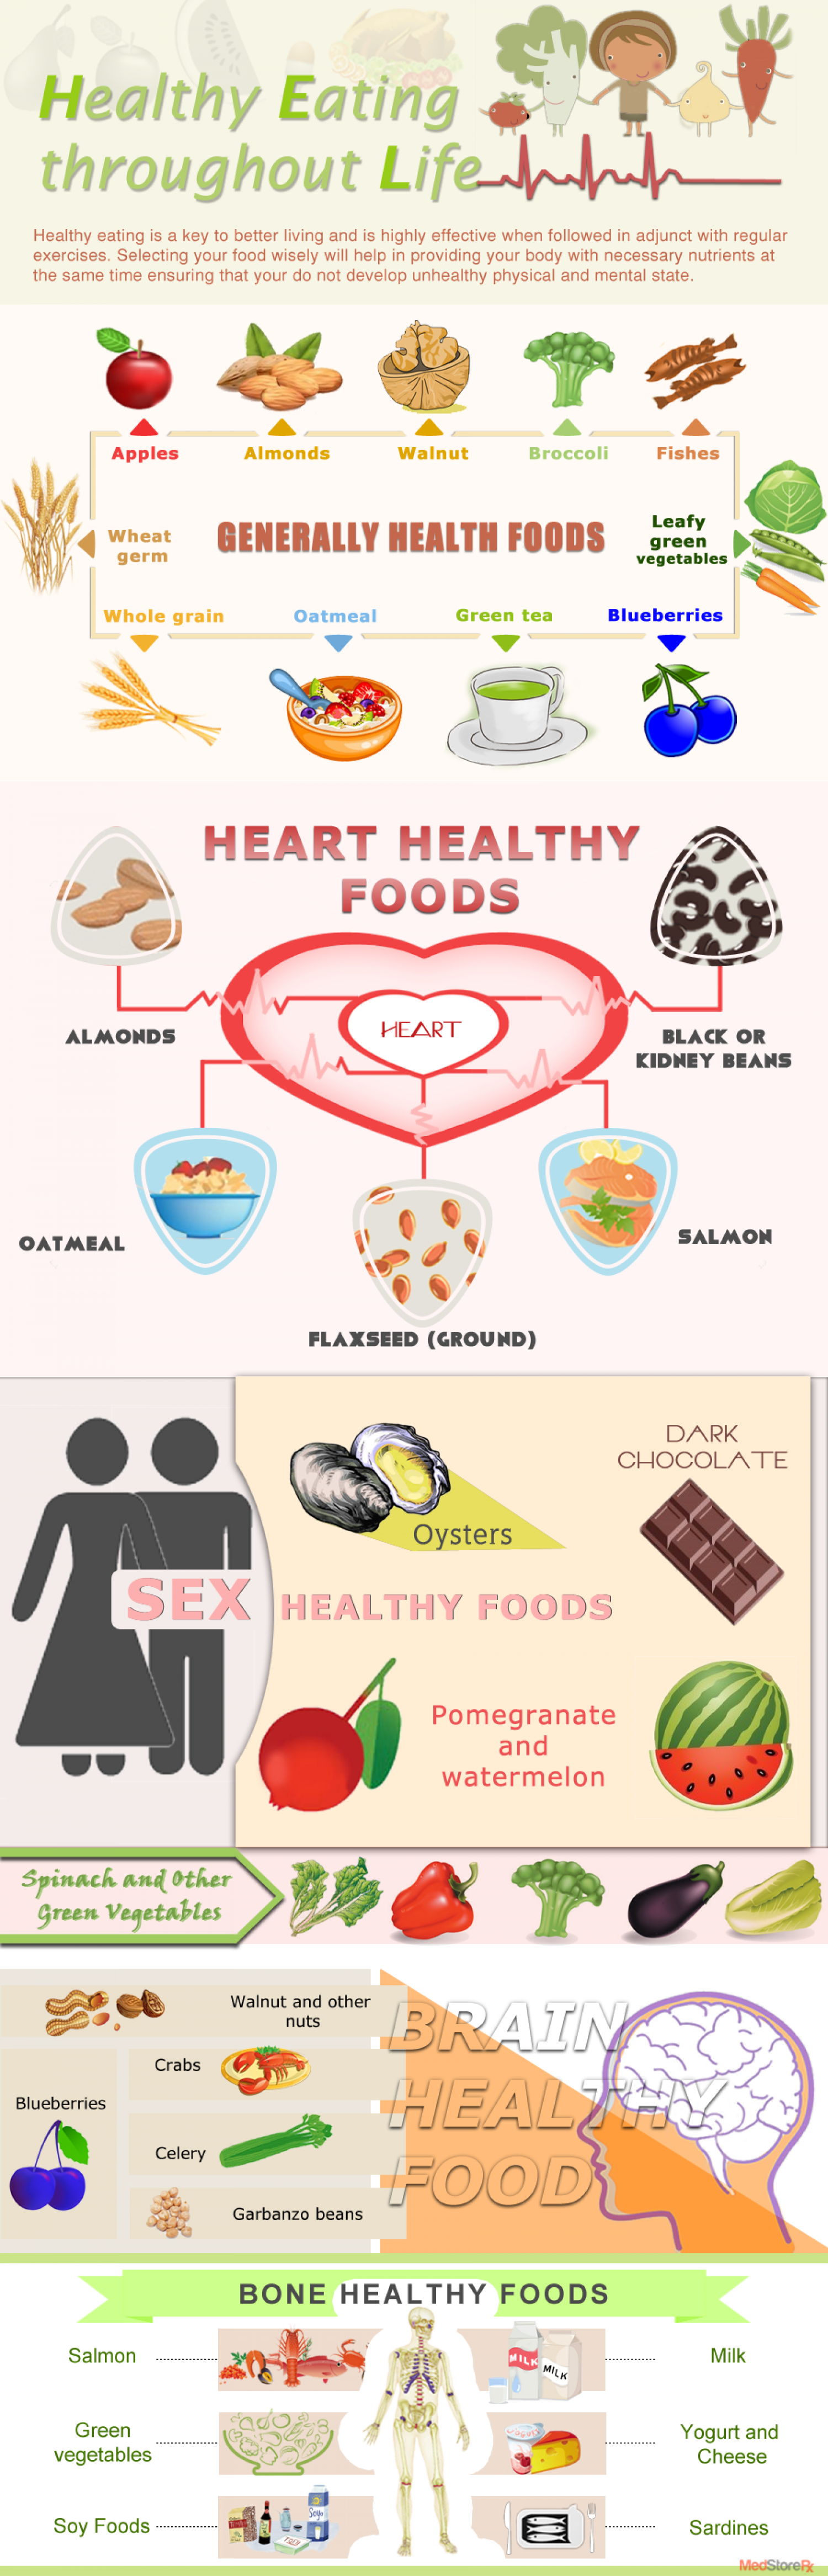 Healthy Eating Throughout Life Infographic